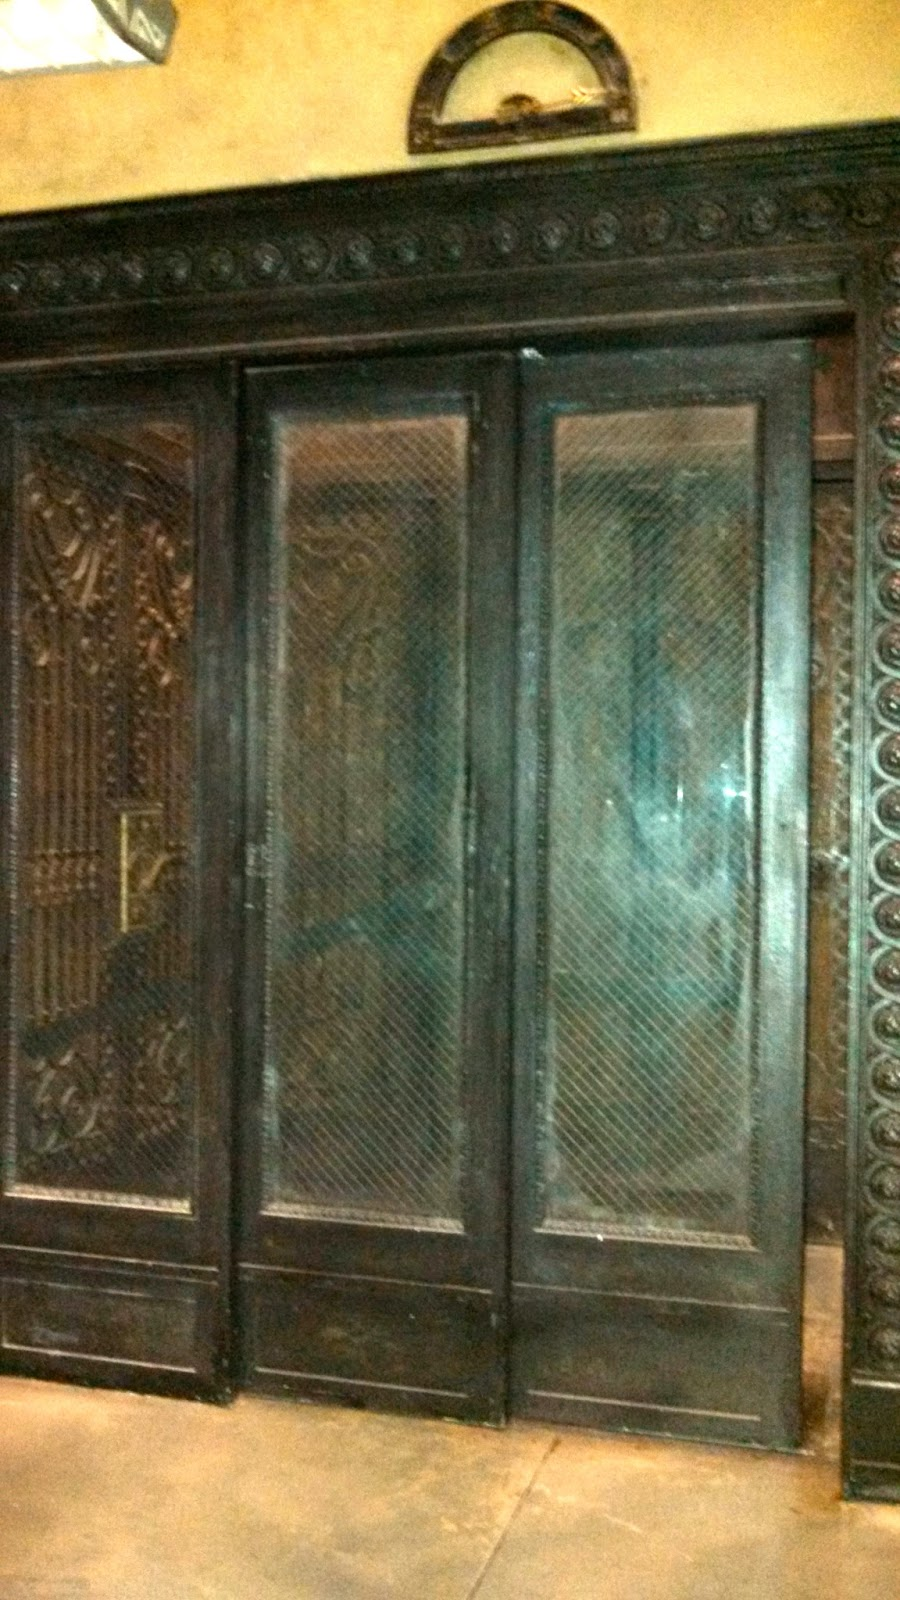 Glass Elevator Doors : The opa summer bts series continues scandal abc